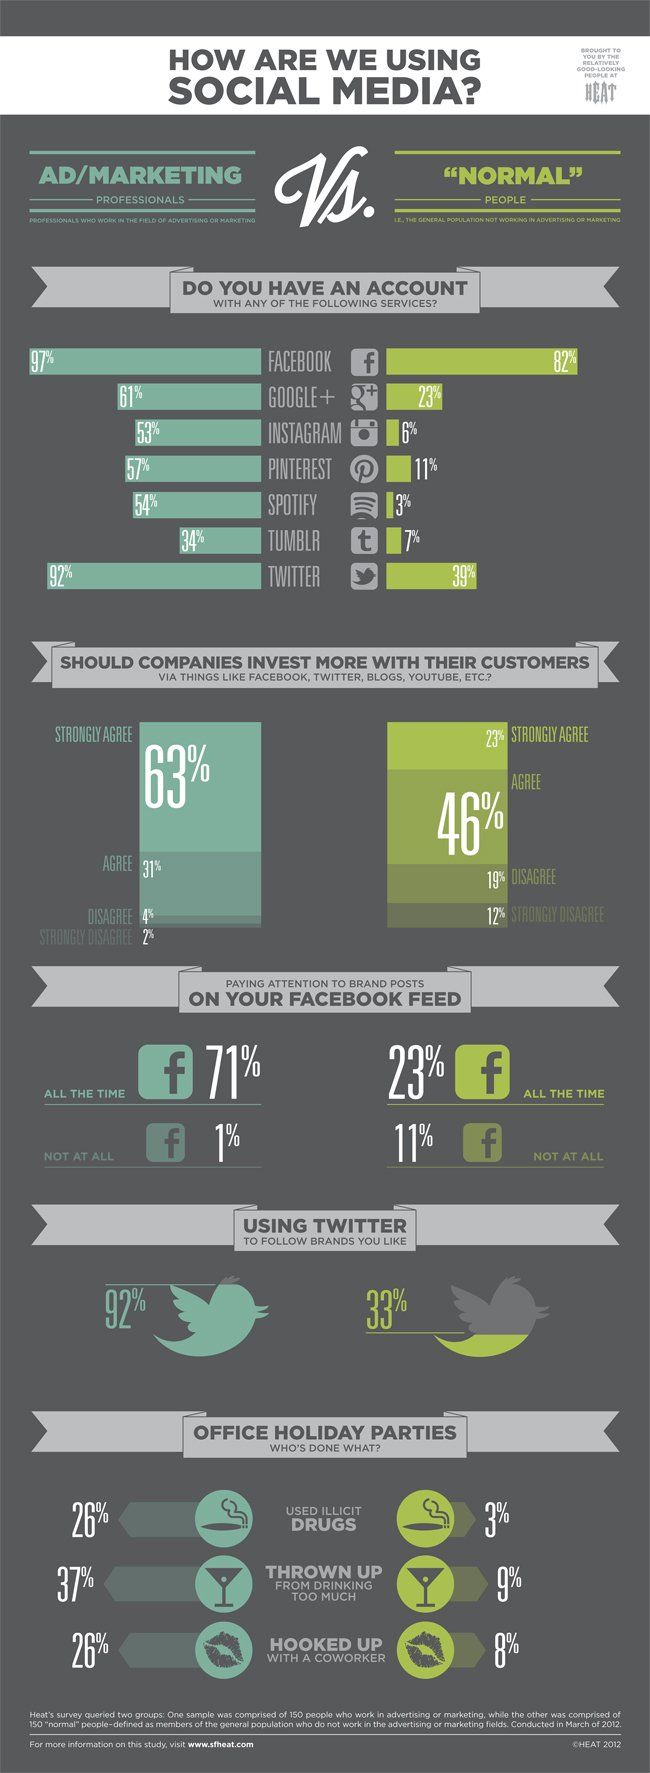 How Are We Using Social Media #Infographic #socialmedia